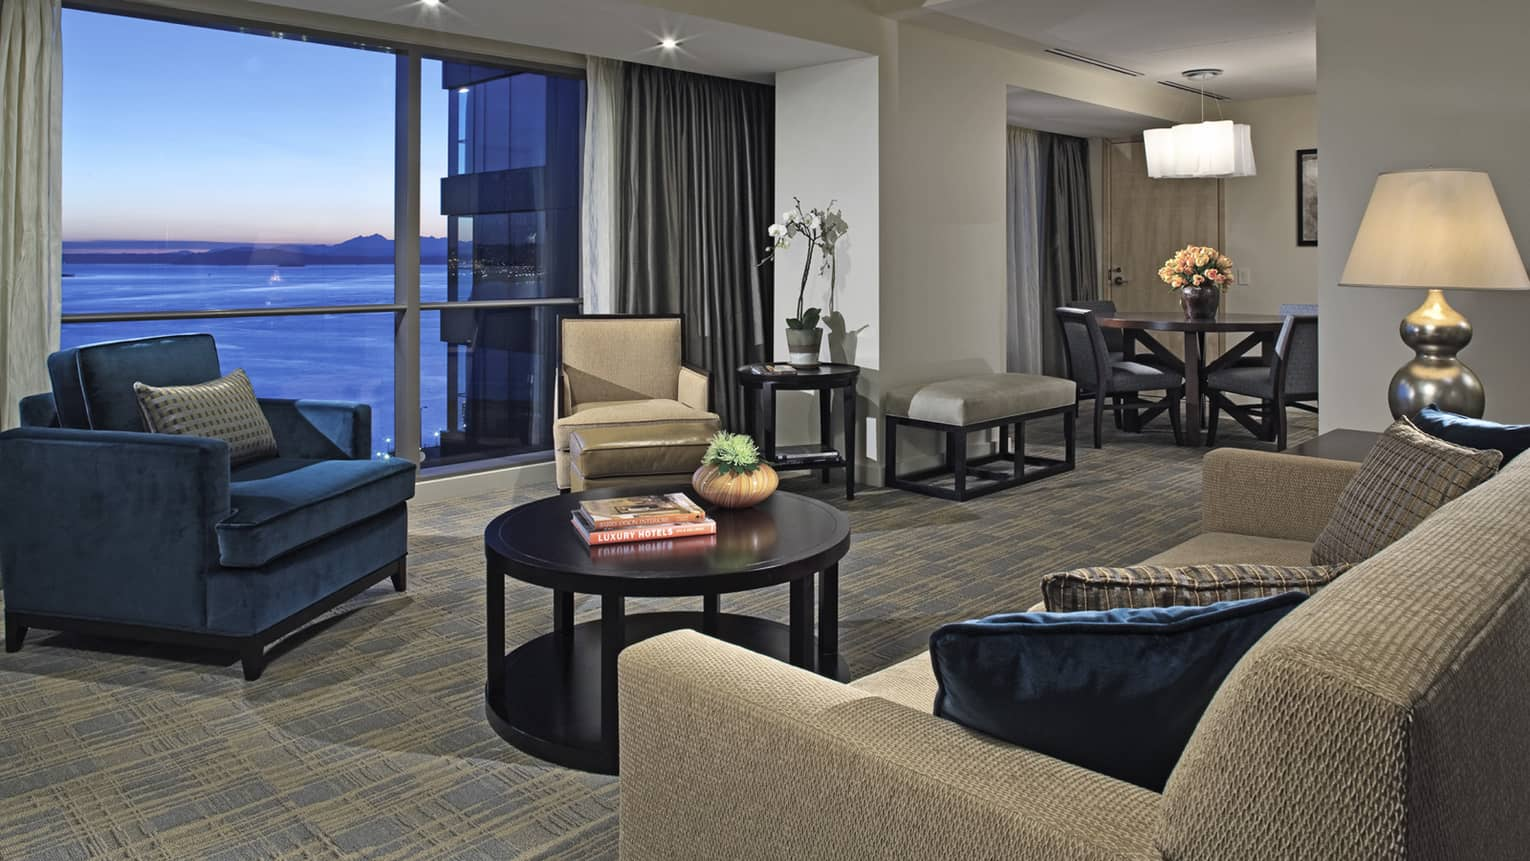 Deluxe Elliott Bay Suite large living room with dark blue armchairs, dining table, floor-to-ceiling sunset bay views